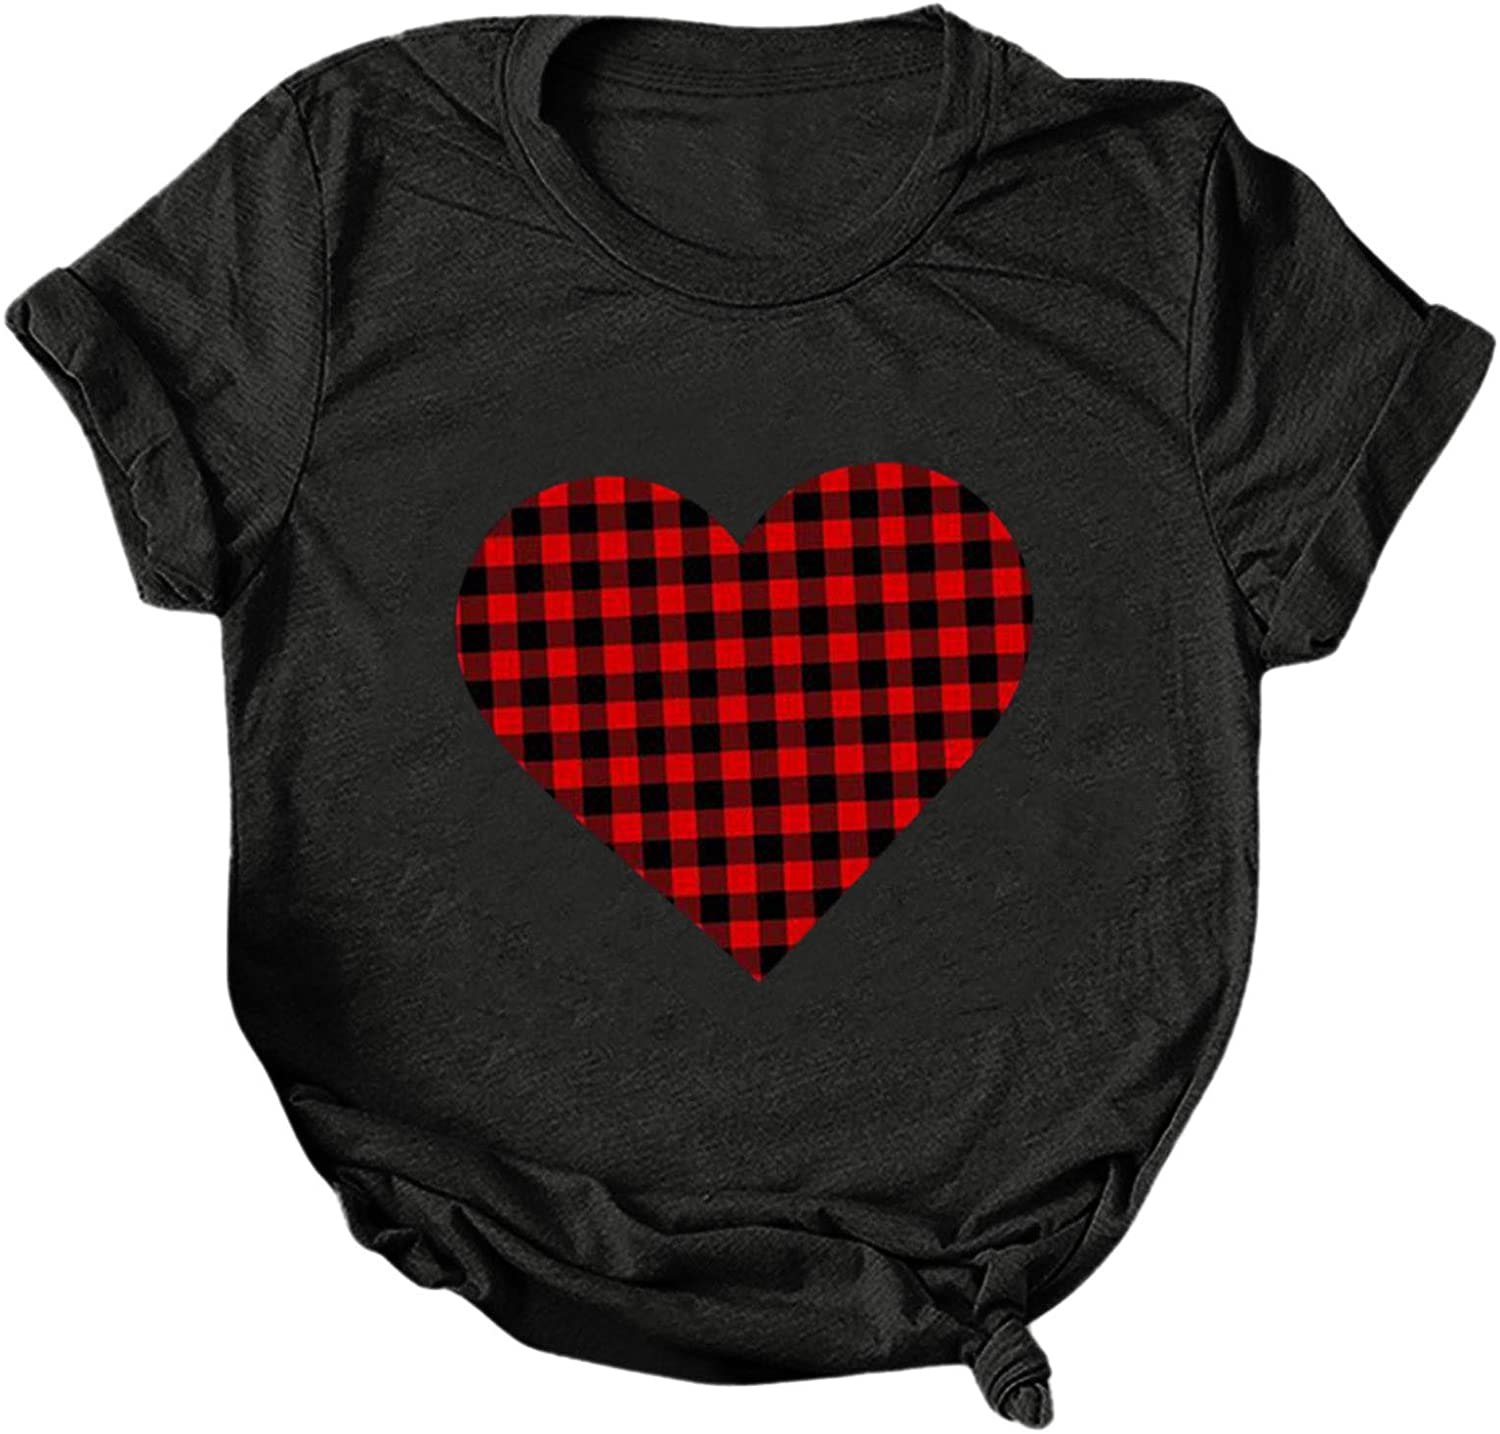 KYLEON Women gift T Low price Shirts Casual Plaid Short Print Heart Summer Tops